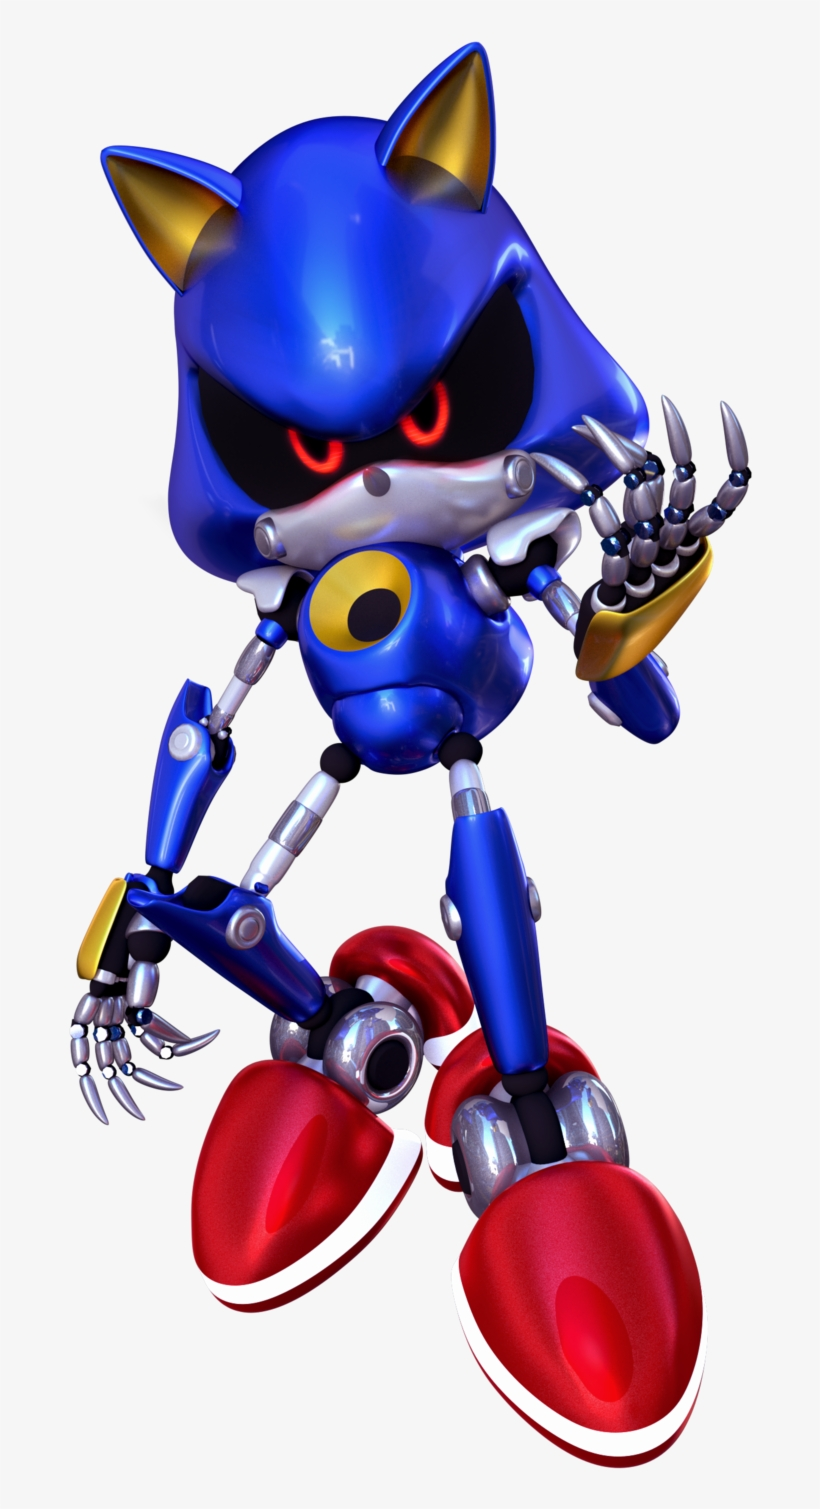 Metal Sonic Sonic The Hedgehog Transparent Png 800x1488 Free Download On Nicepng